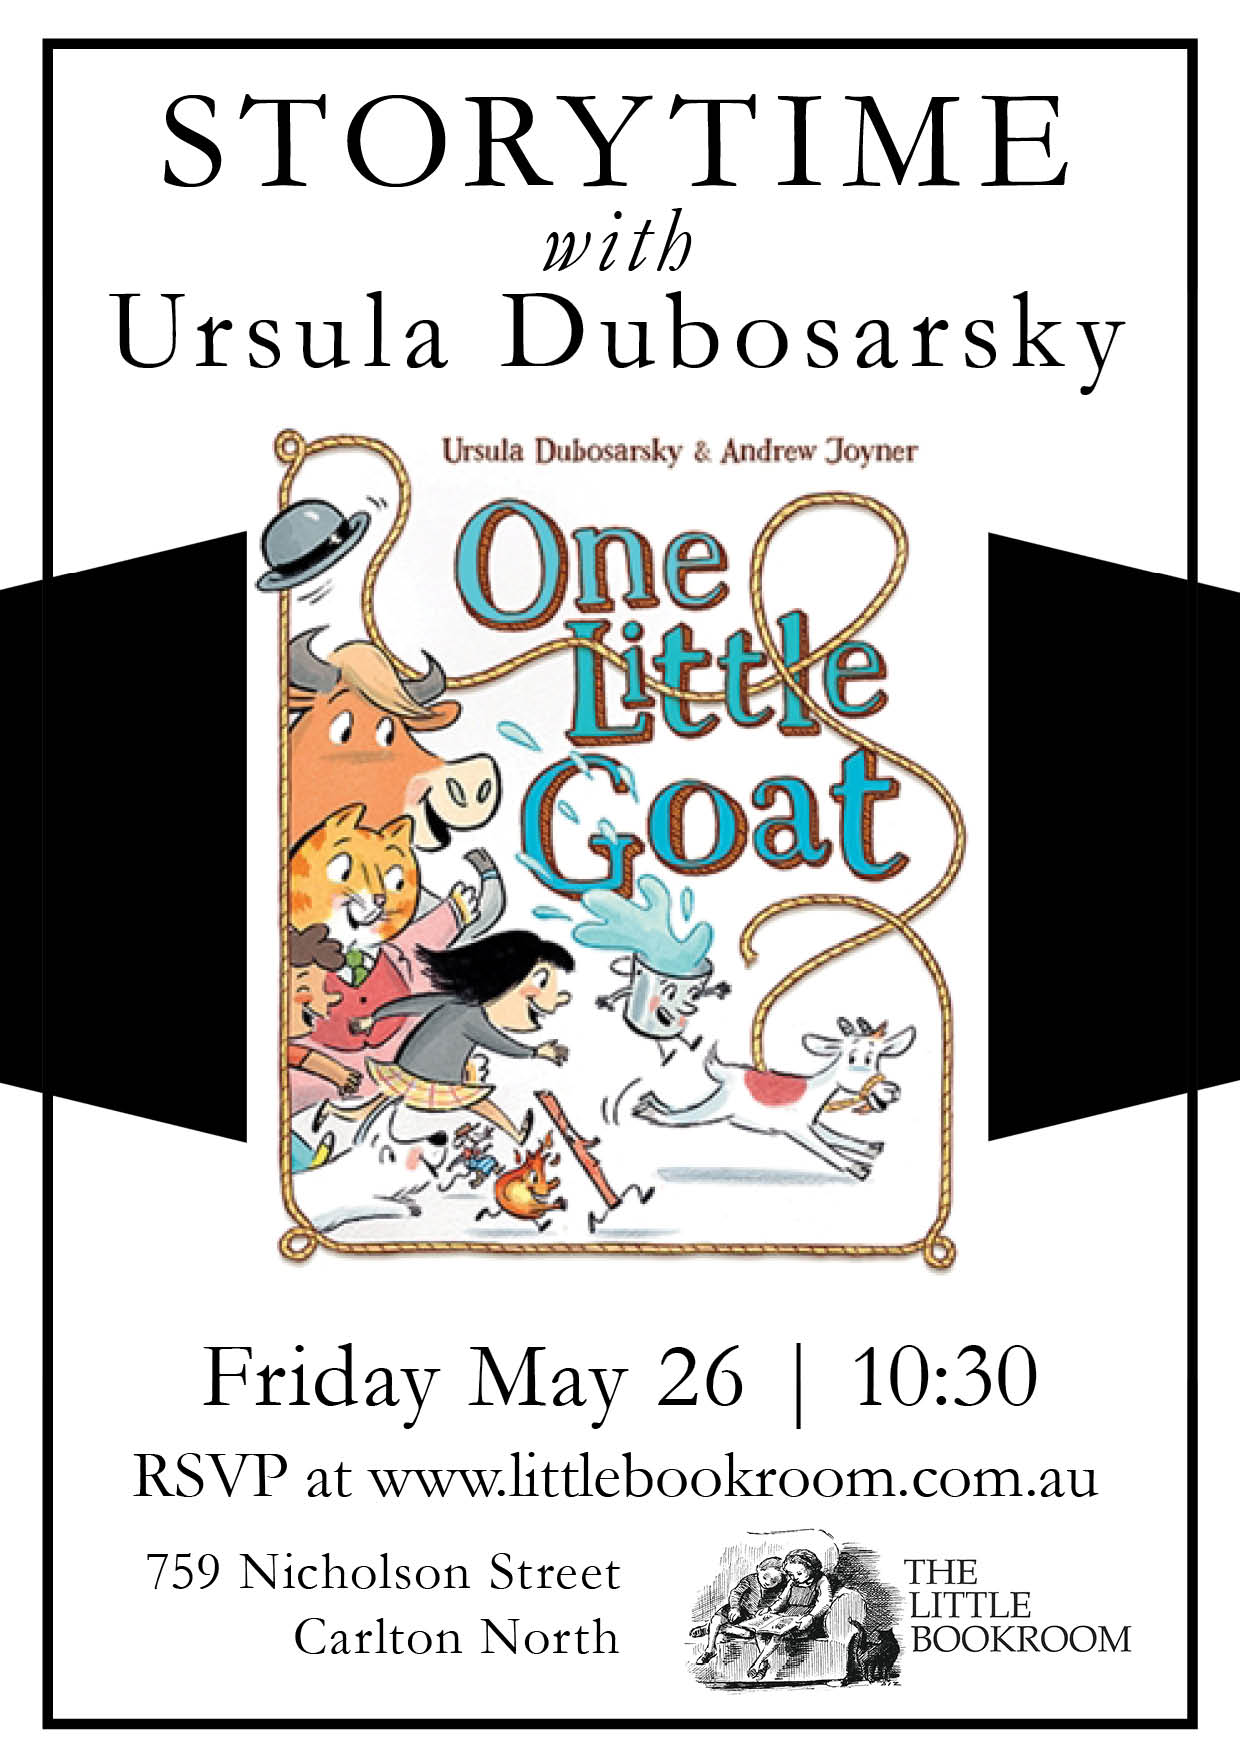 Storytime with Ursula Dubosarsky to celebrate the release of One Little Goat